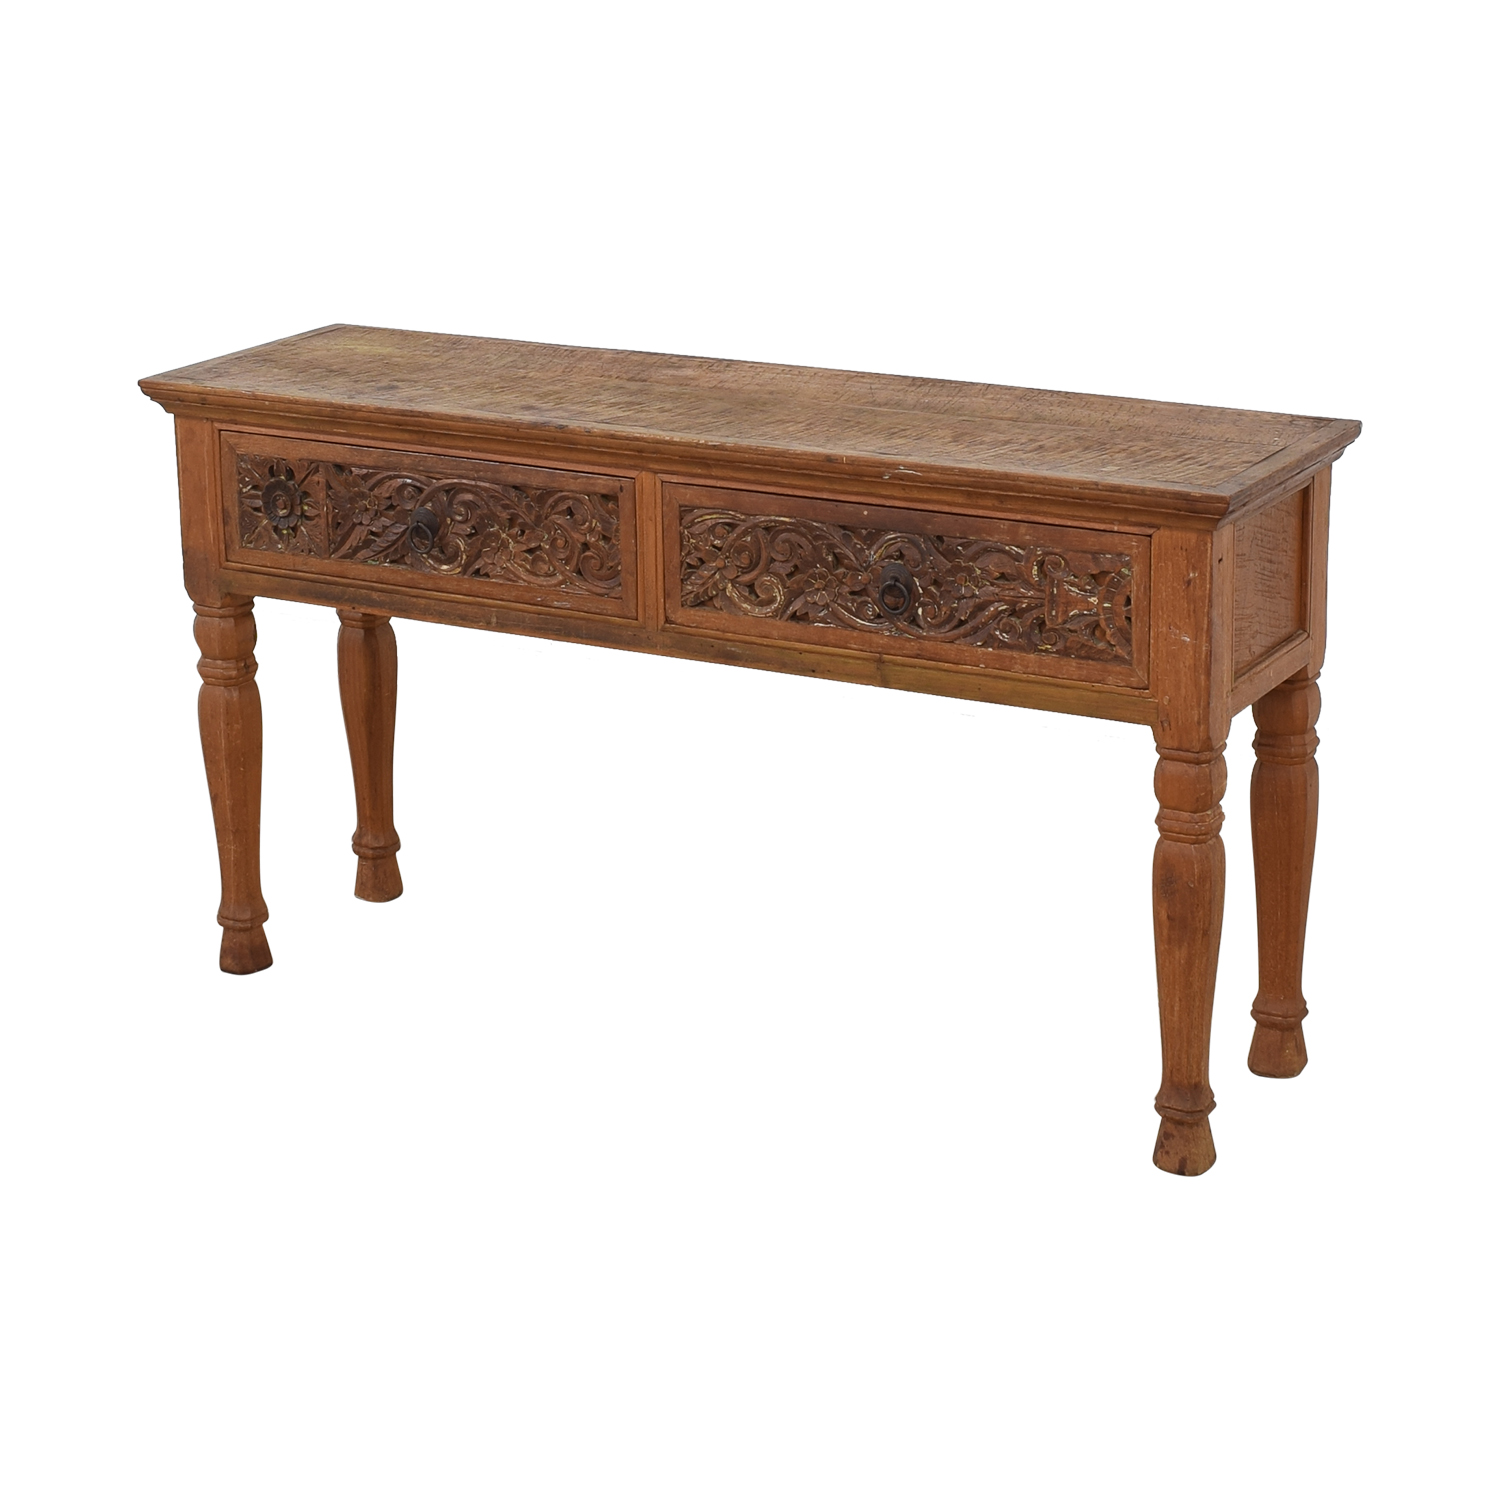 ABC Carpet & Home ABC Carpet & Home Carved Indonesian Style Console Table pa